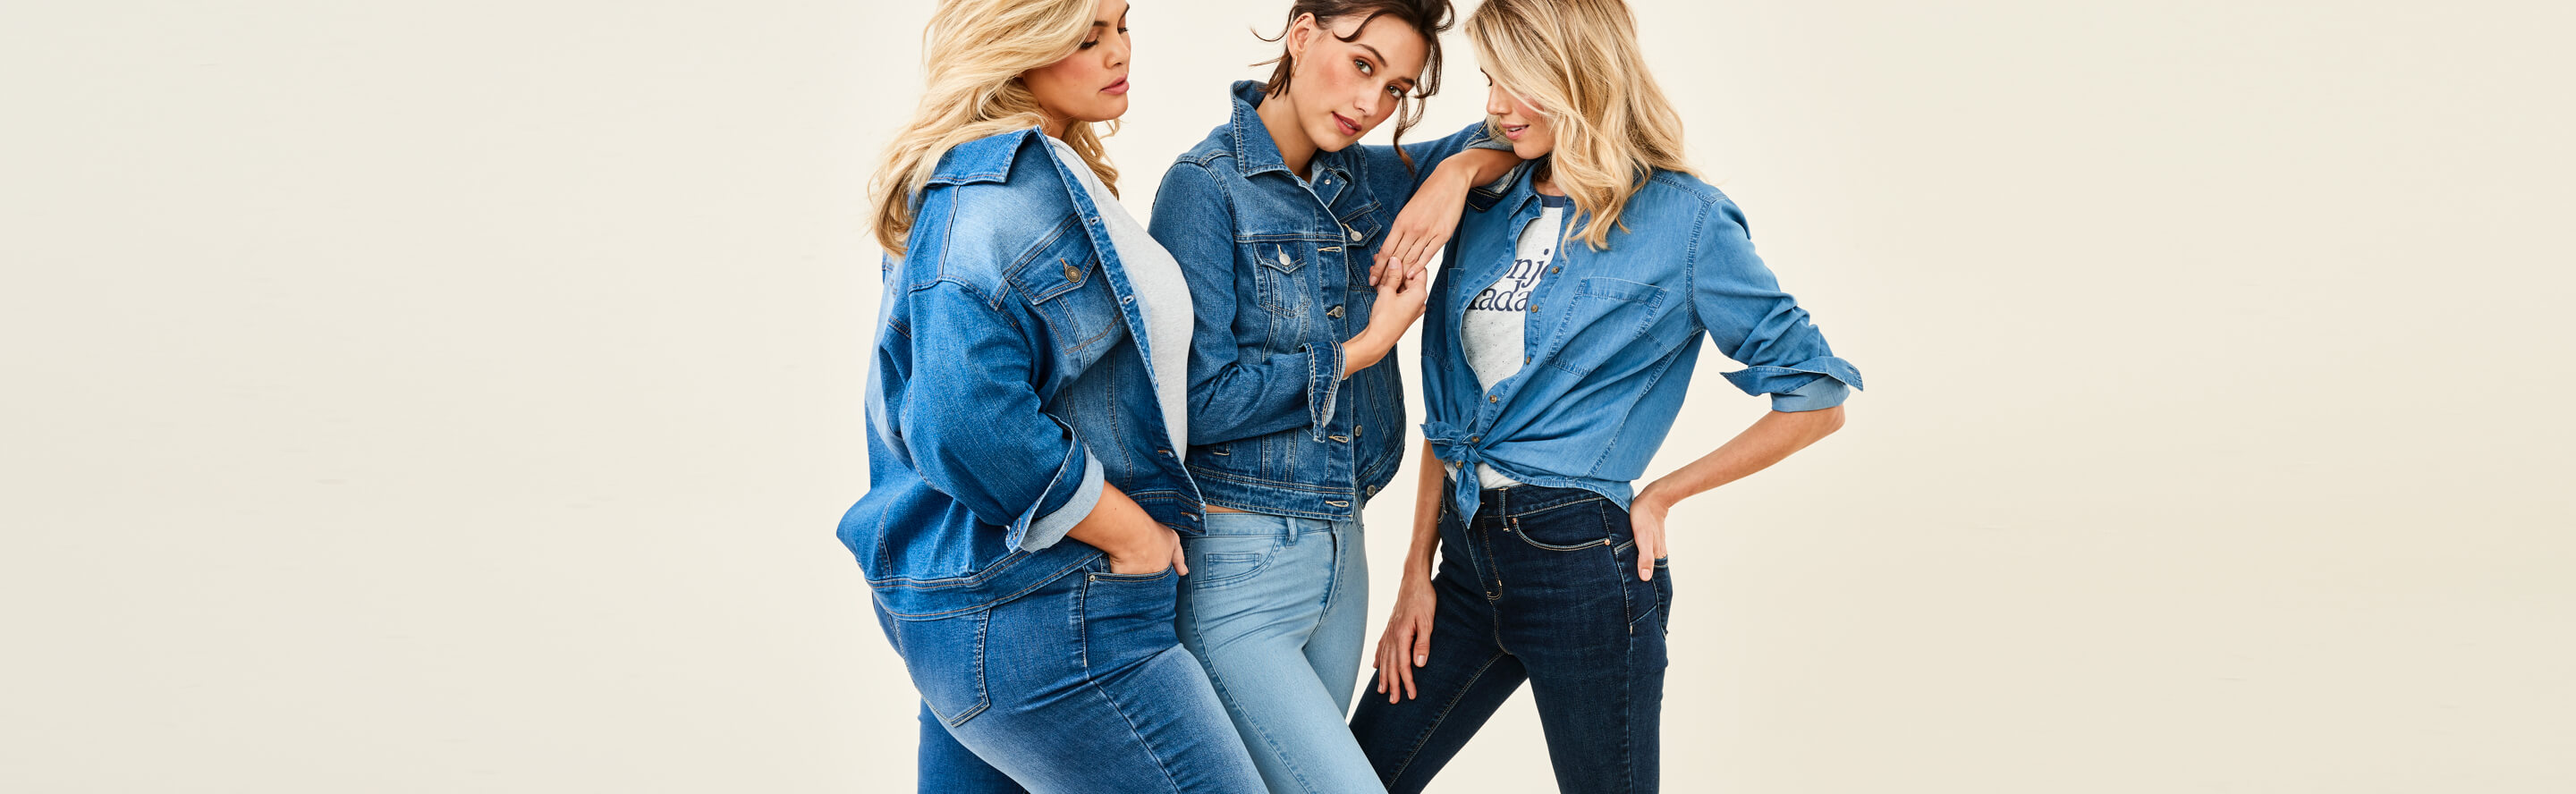 8f4274811 Buy Women's Clothing Online | Clothes, Shoes & Accessories | Kmart